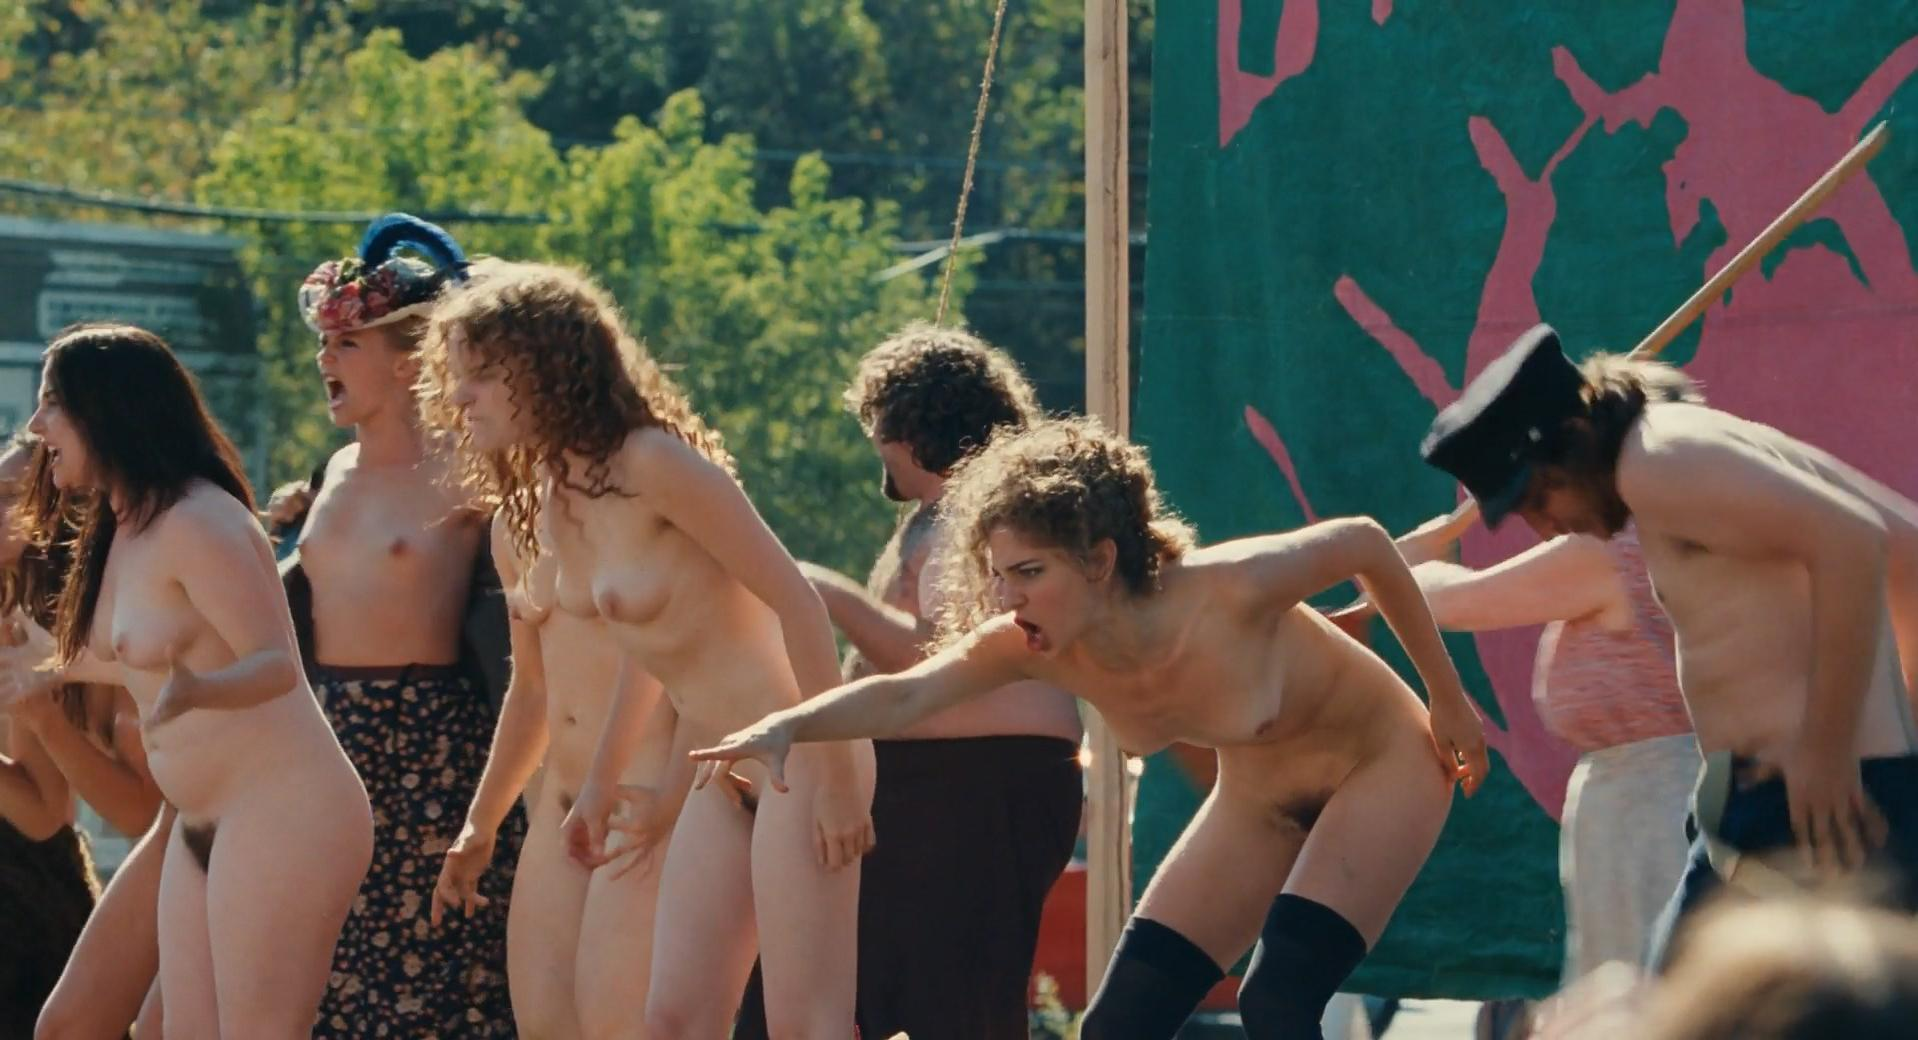 Ending woodstock nudist photos love